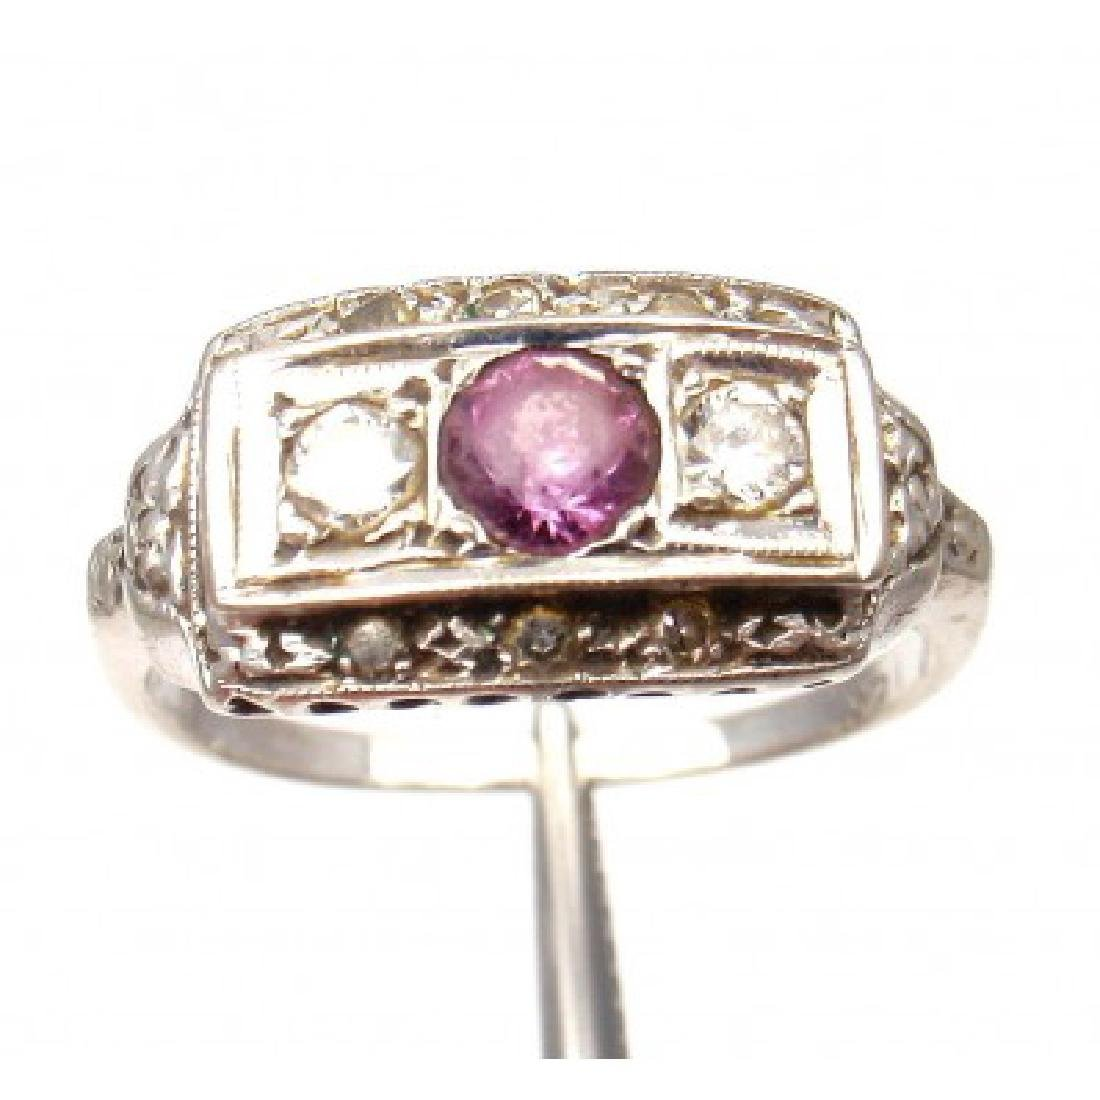 VINTAGE 14K  0.15CTW DIAMOND AMETHYST RING SZ 6.5